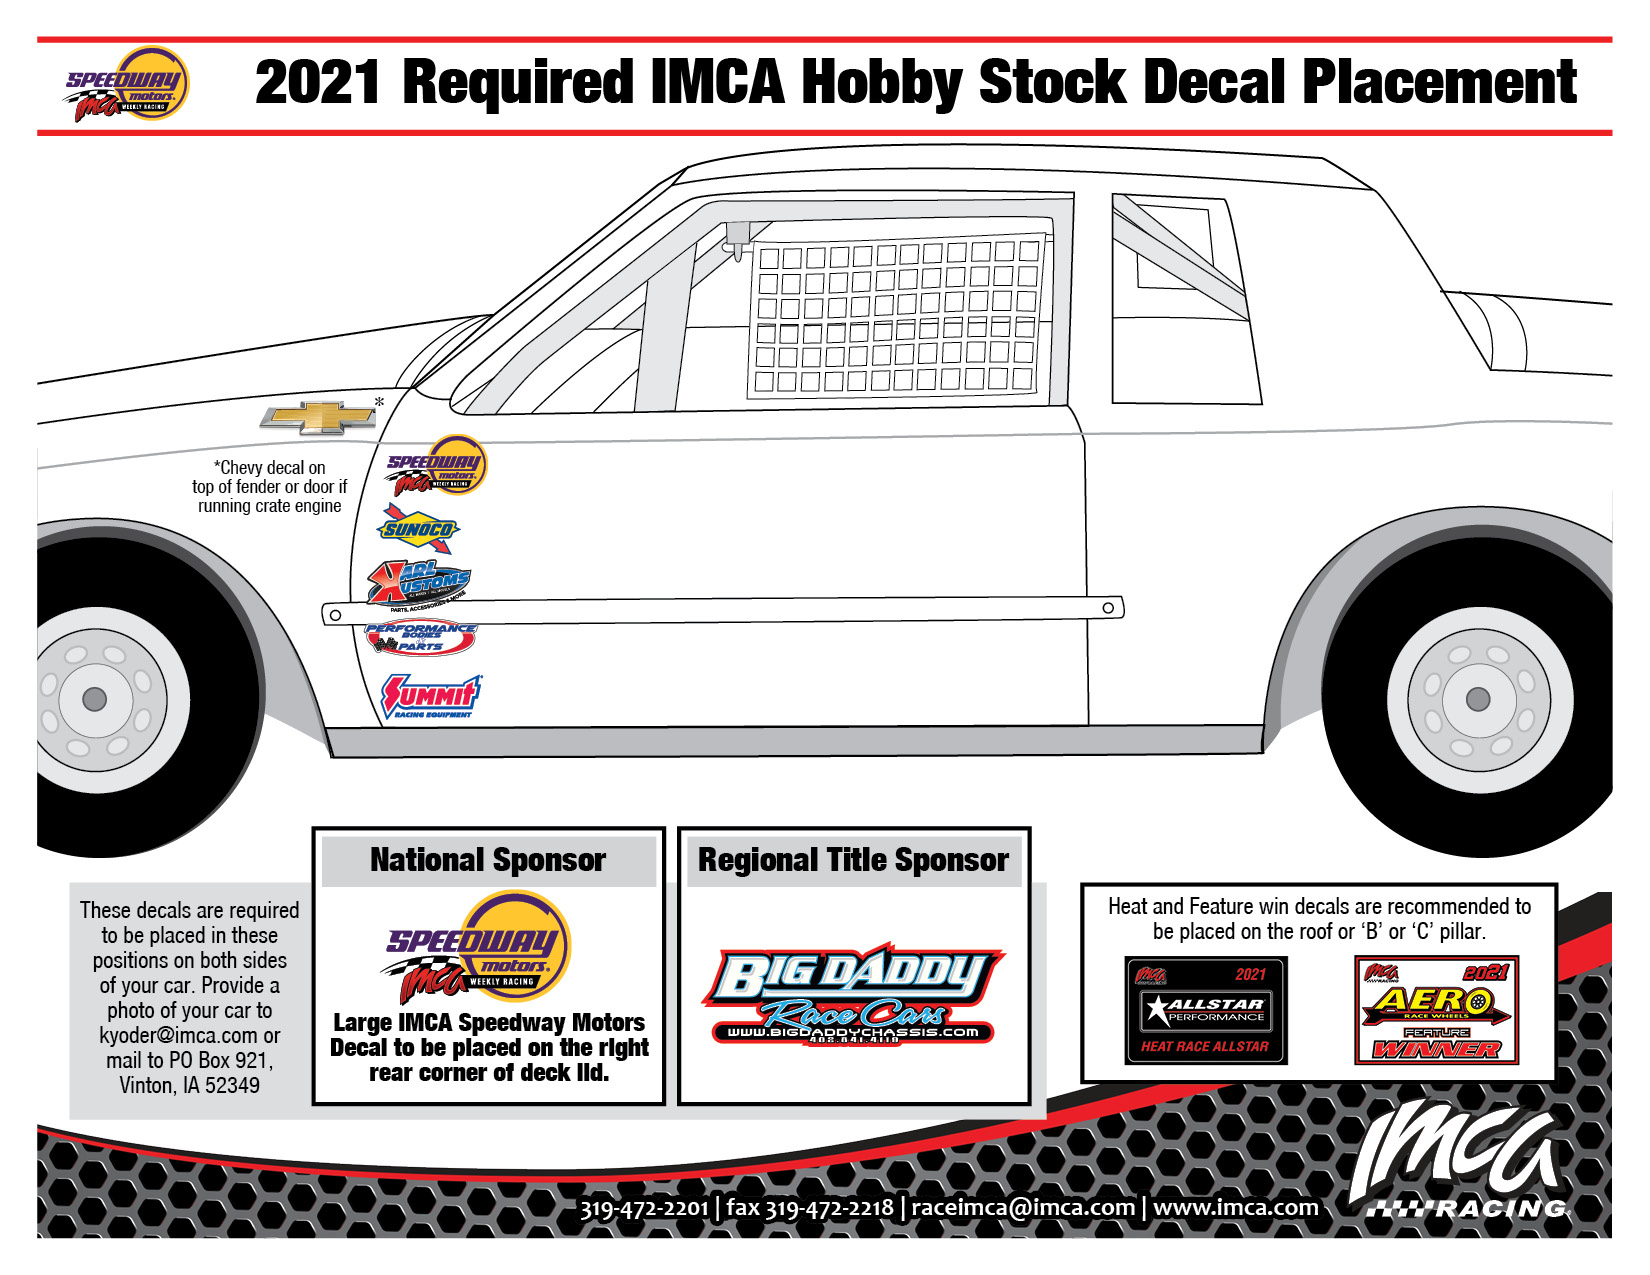 IMCA Hobby Stock 2021 decal placement